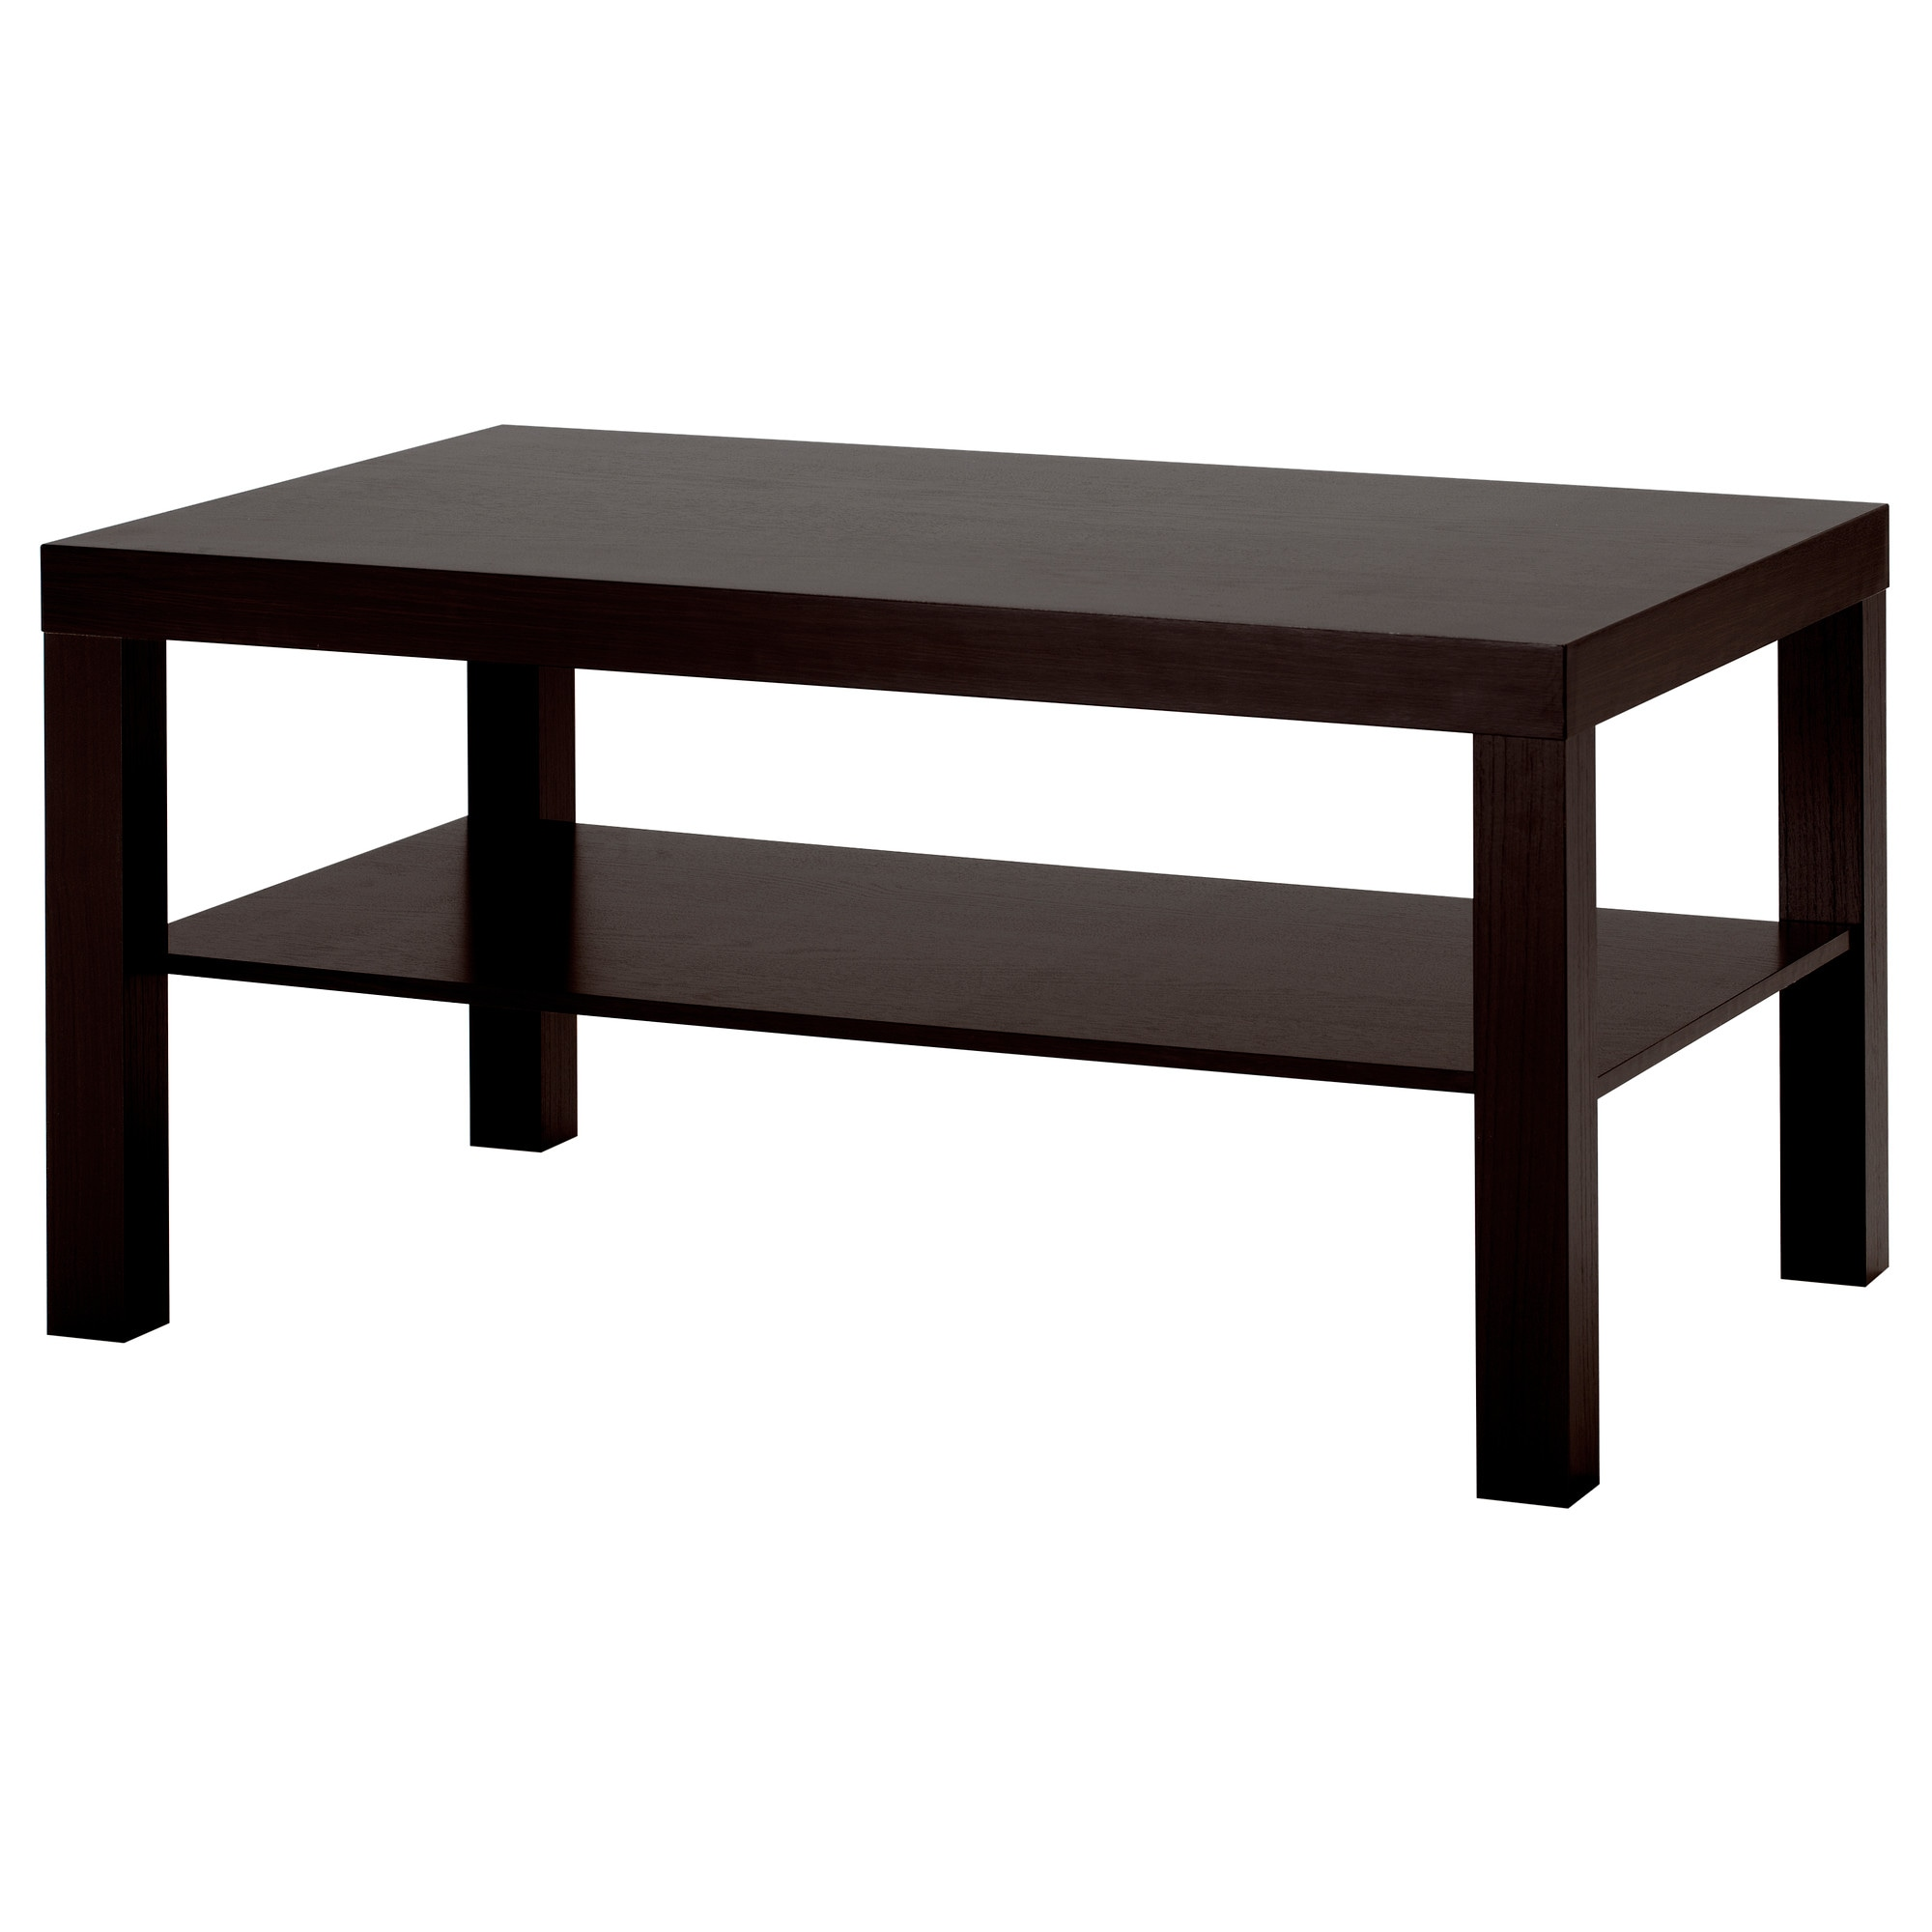 Ikea leksvik coffee table - Lack Coffee Table Black Brown Length 35 3 8 Width